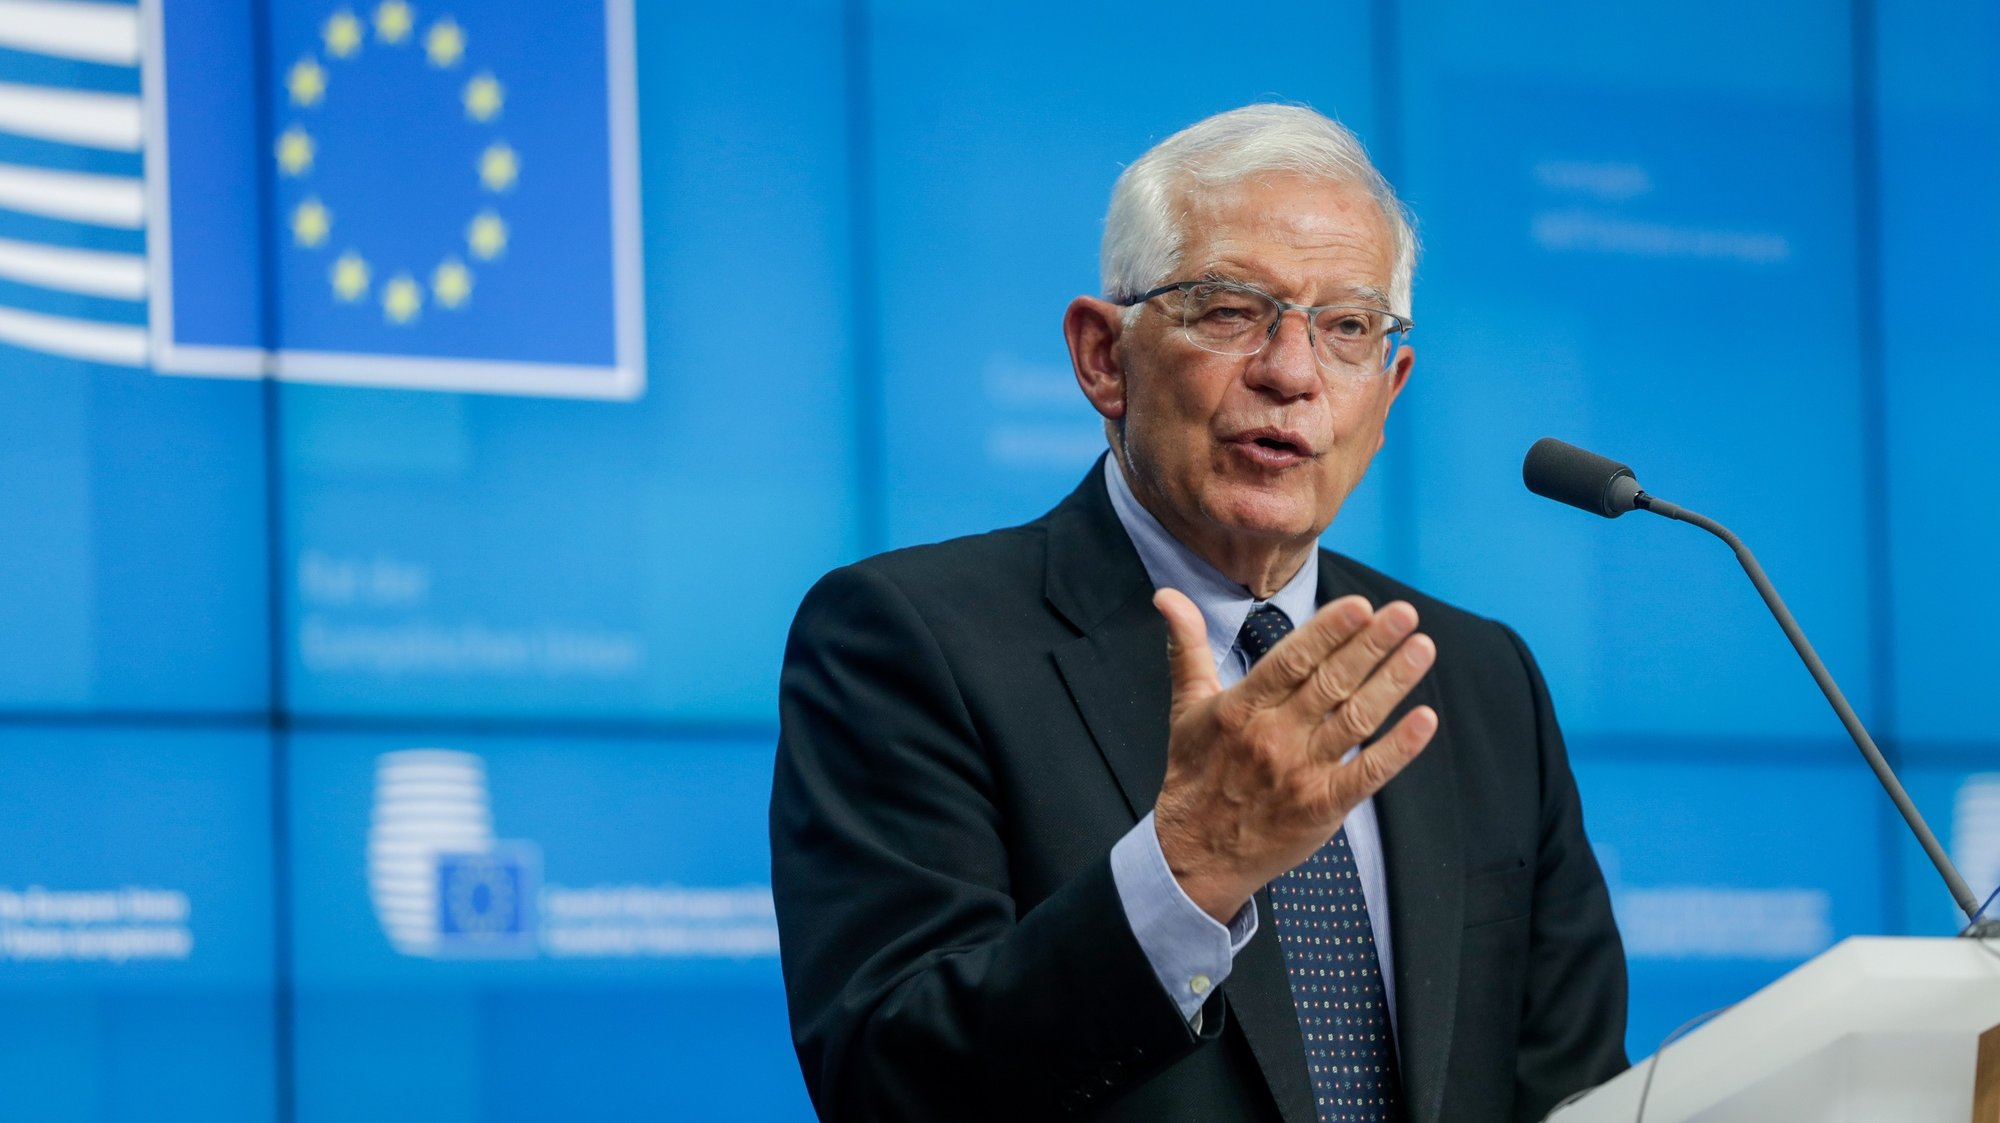 epa09340610 European Union foreign policy chief Josep Borrell gives a press conference at the end of a meeting of the EU foreign ministers, at the European Council in Brussels, Belgium, 12 July 2021.  EPA/STEPHANIE LECOCQ